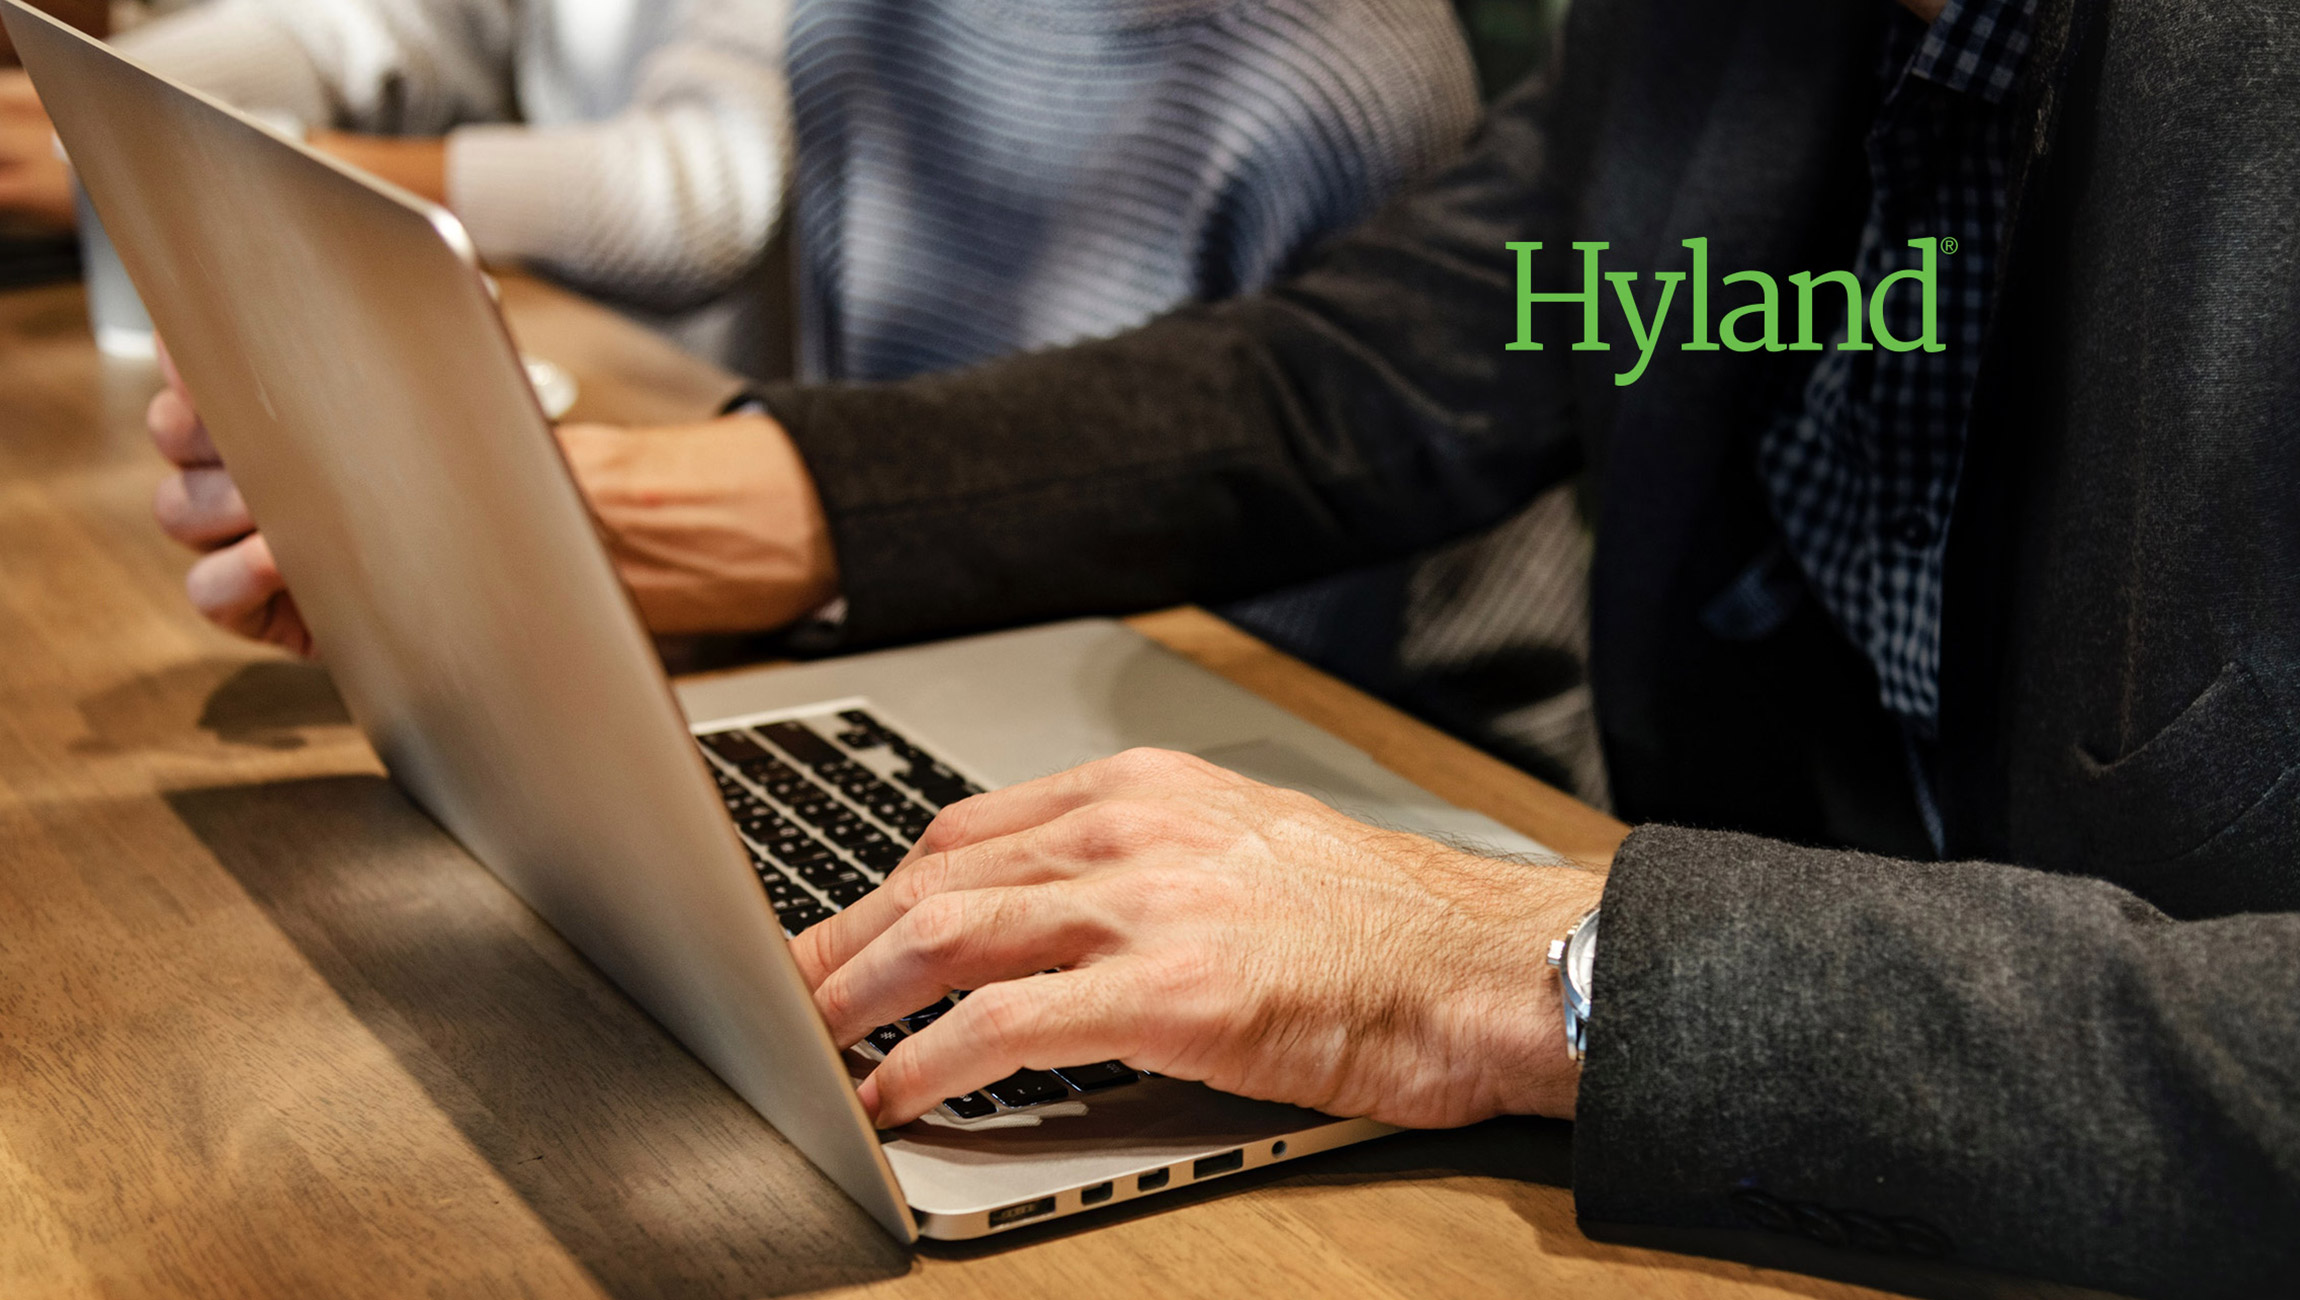 Hyland and Alfresco named a Leader in the Gartner Magic Quadrant for Content Services Platforms 2020